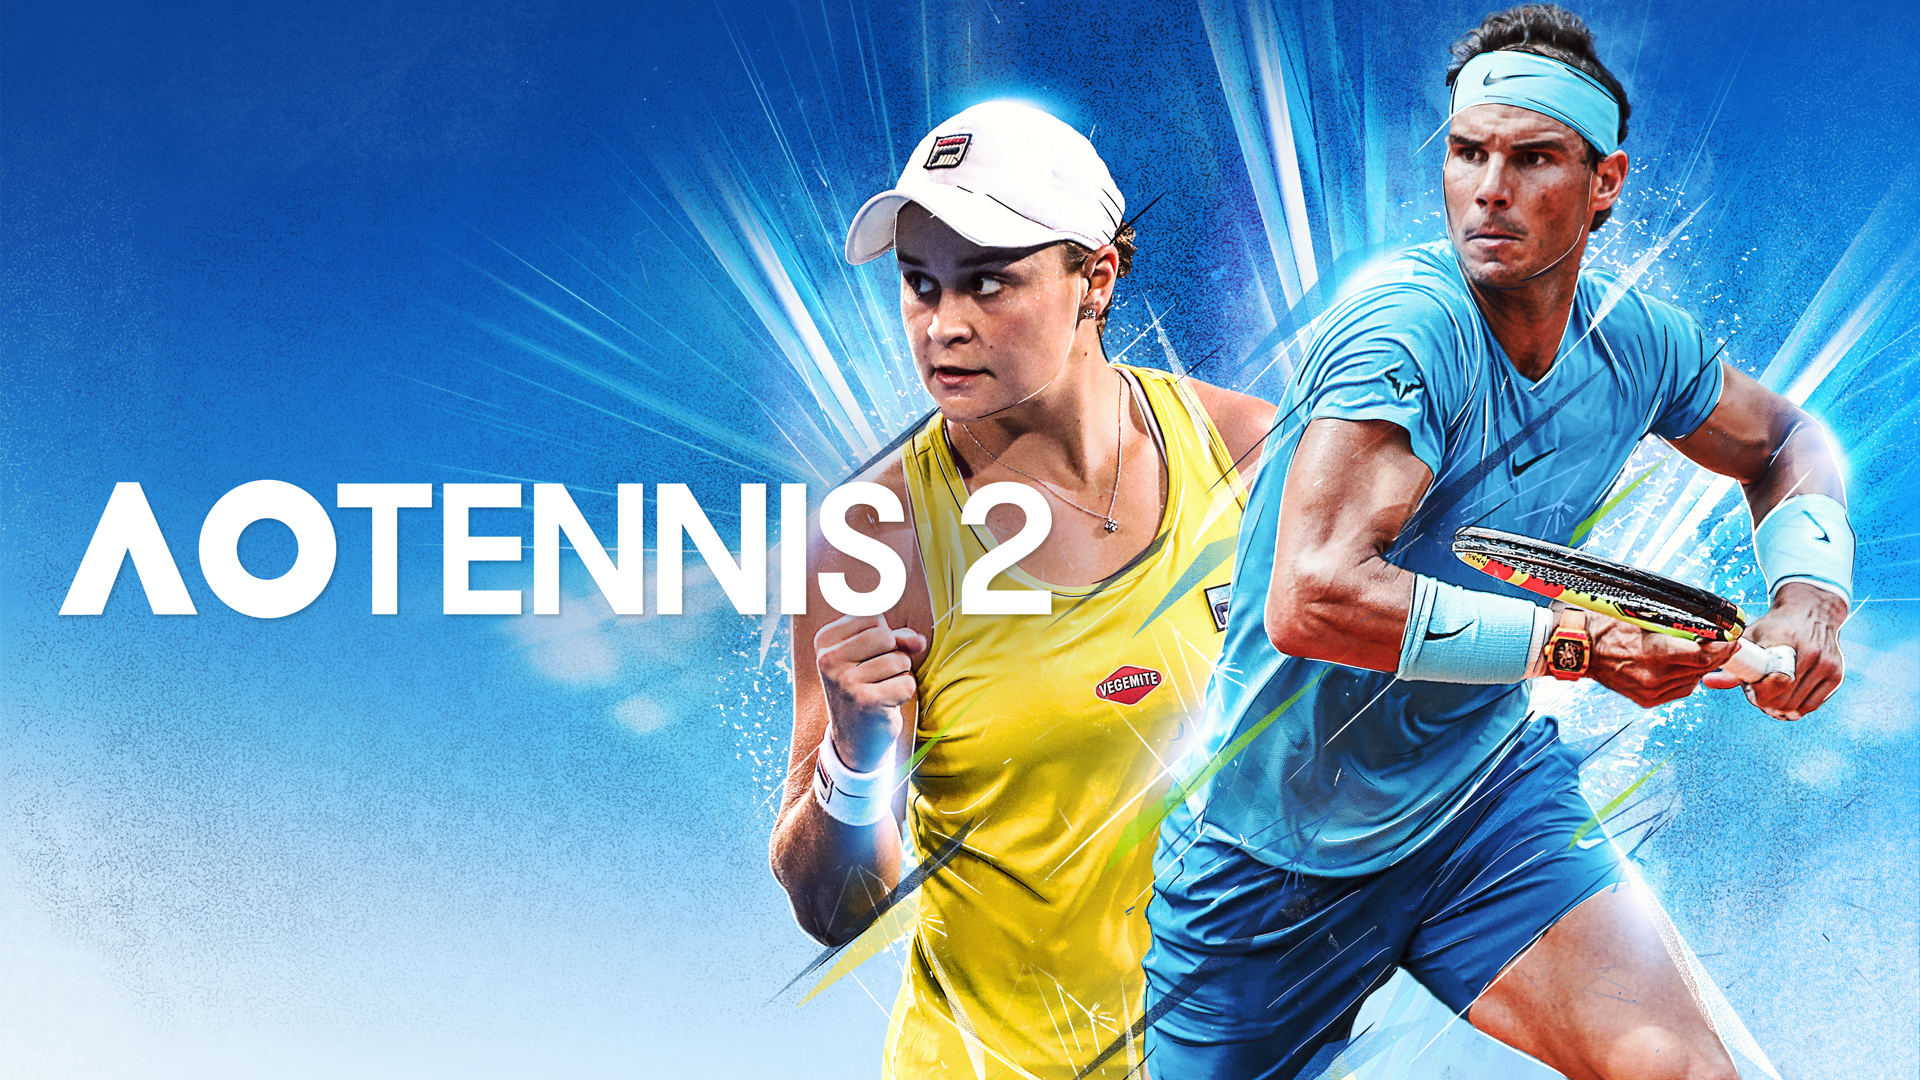 AO Tennis 2 Free Download Full Version Xbox One Setup